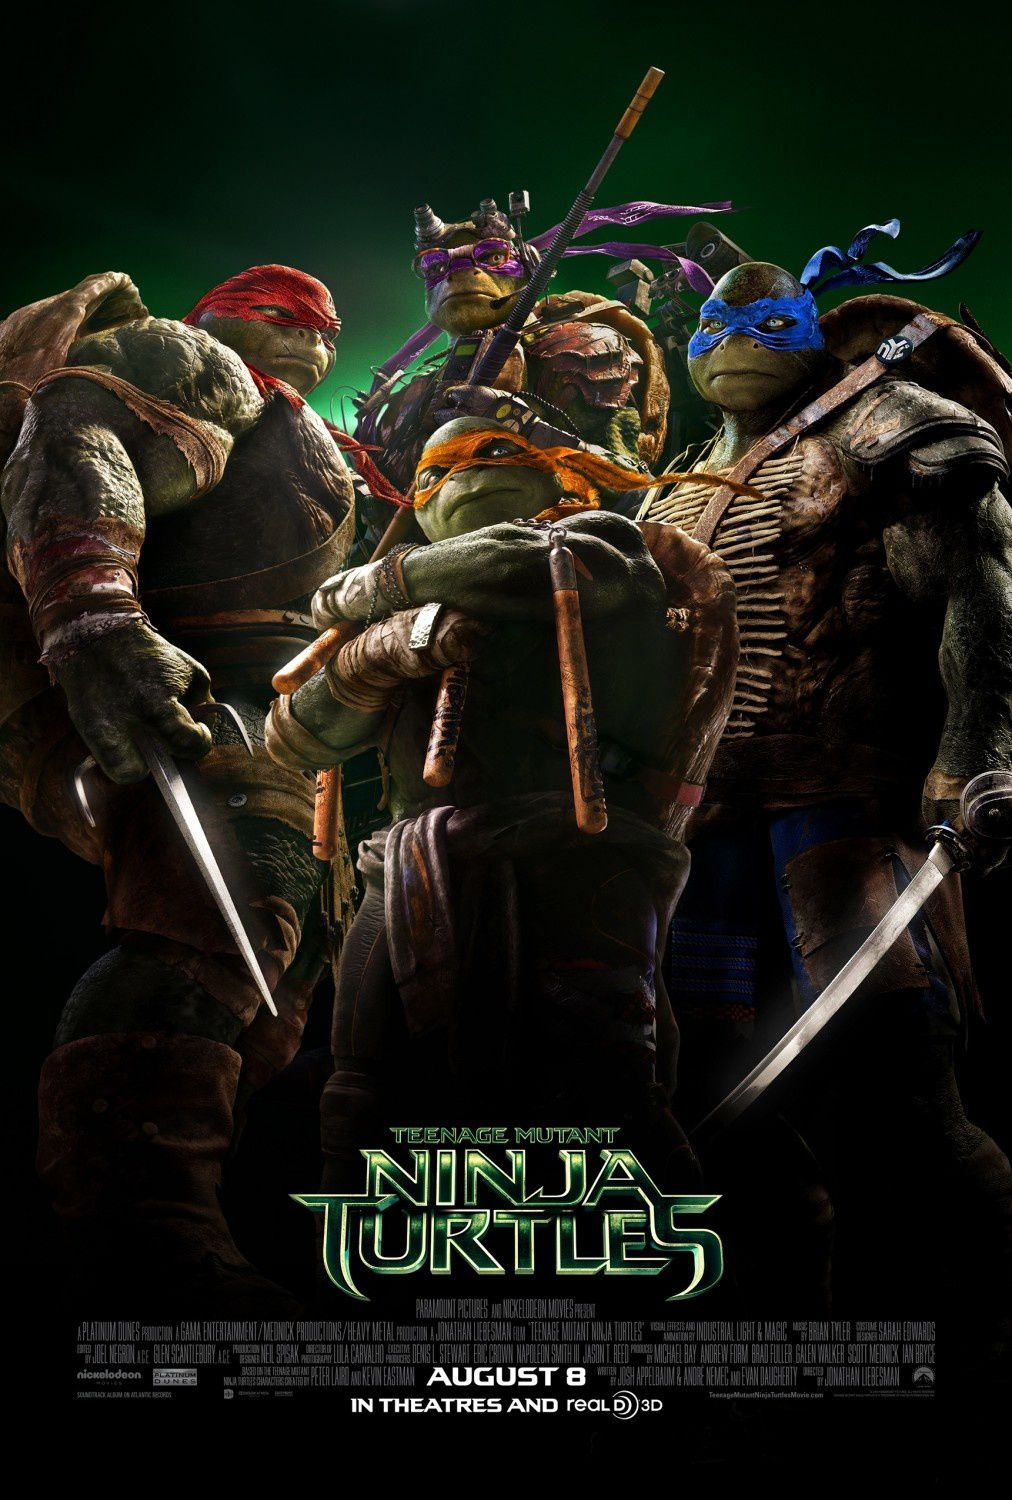 [critique] Ninja Turtles... con mais assumé